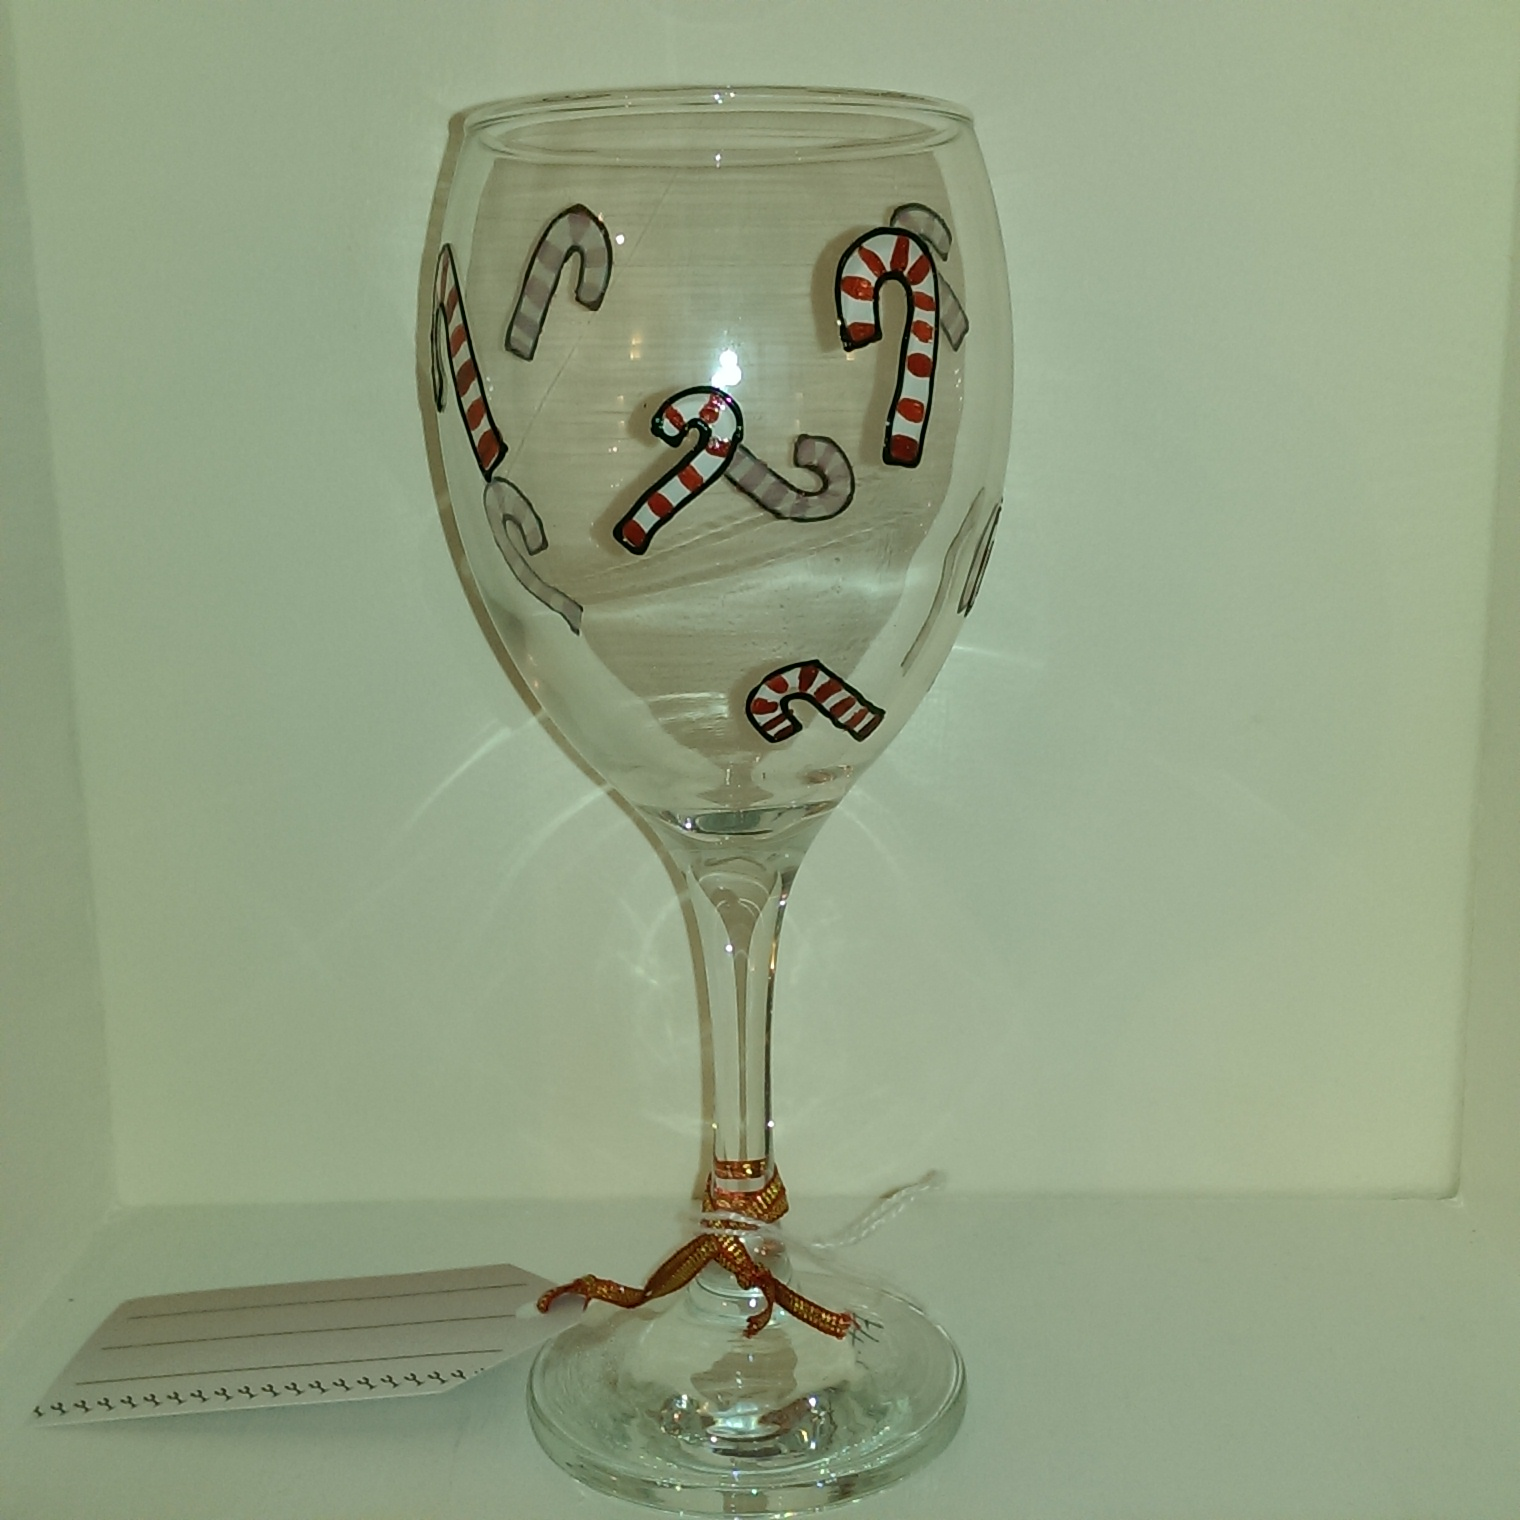 Already Painted Candy Cane Wine Glass Personalised Wine